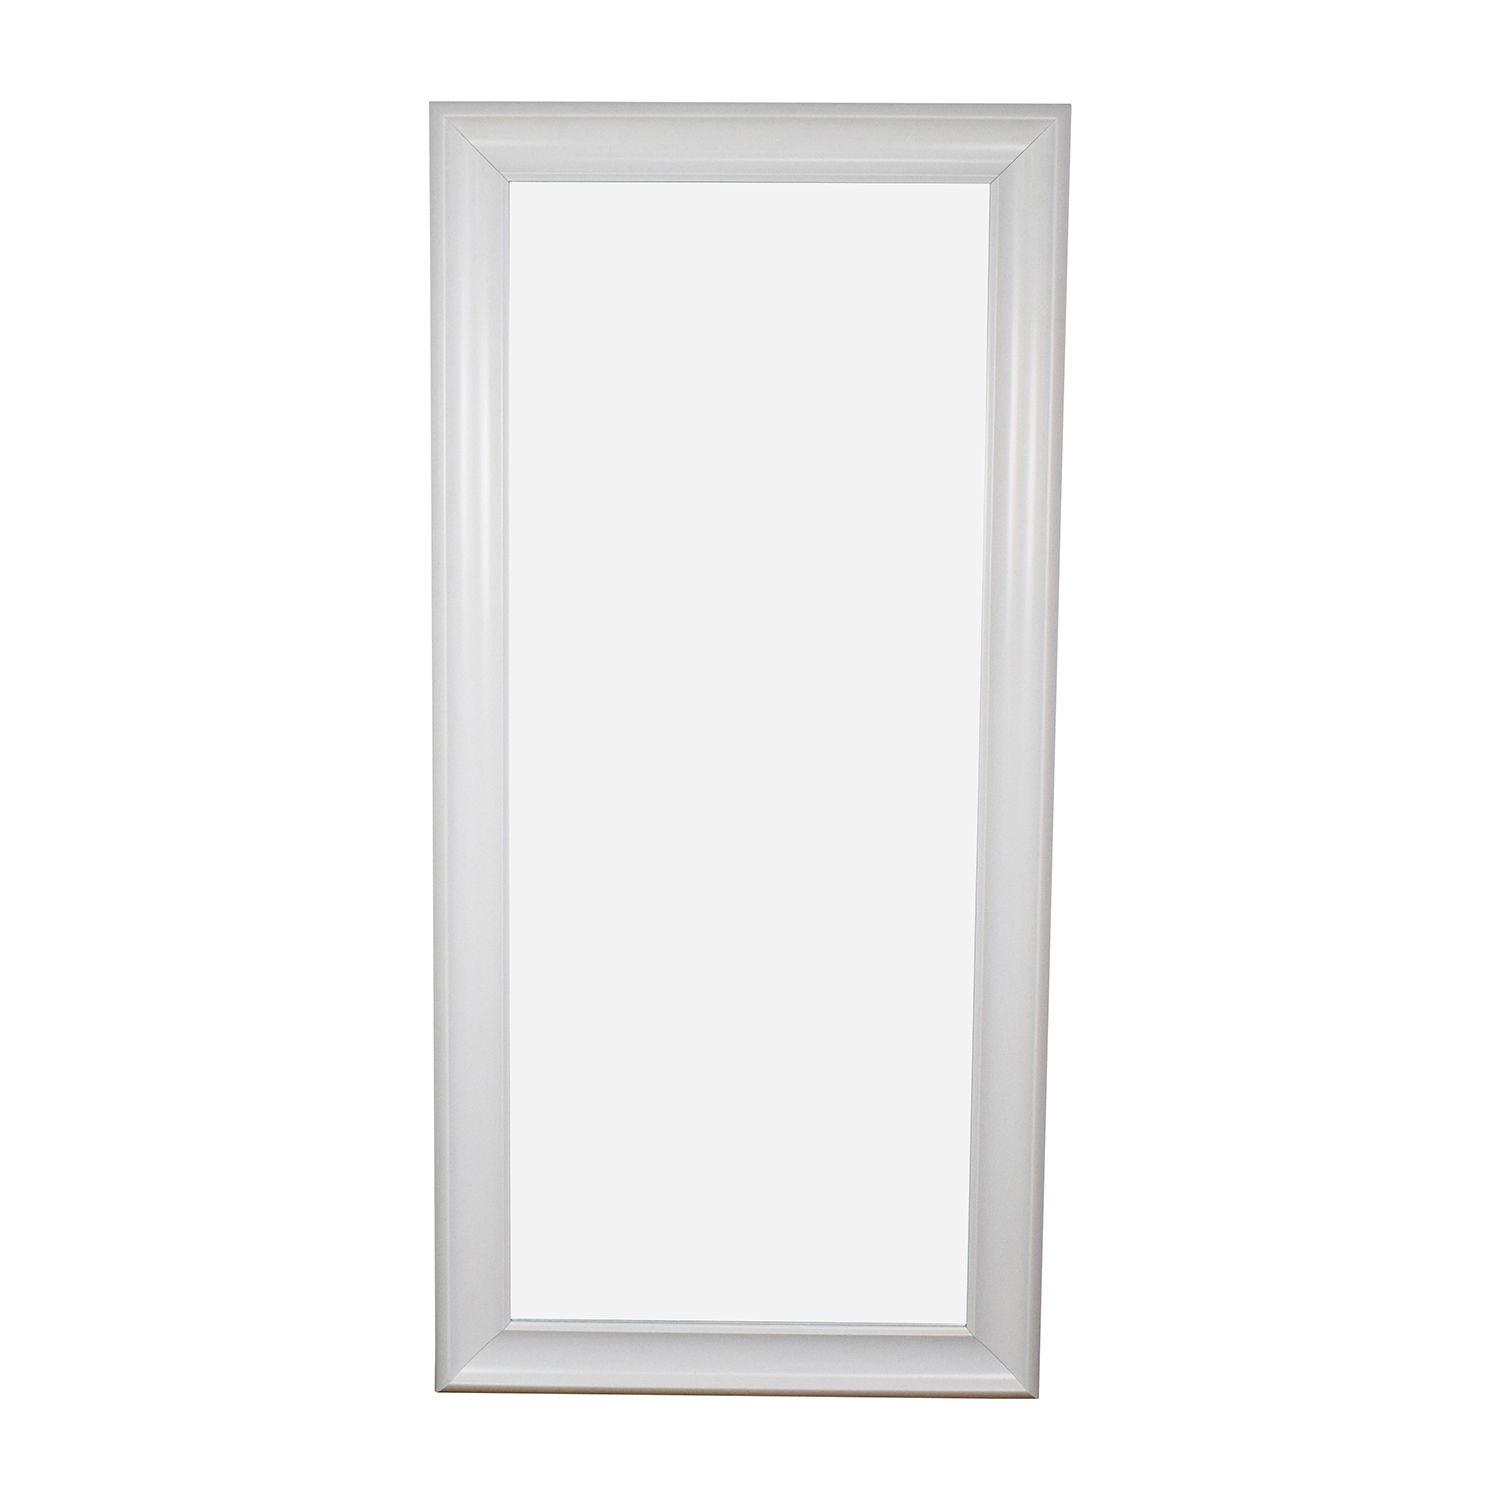 shop Sandberg Furniture Contemporary Full Length Mirror Sandberg Furniture Decor